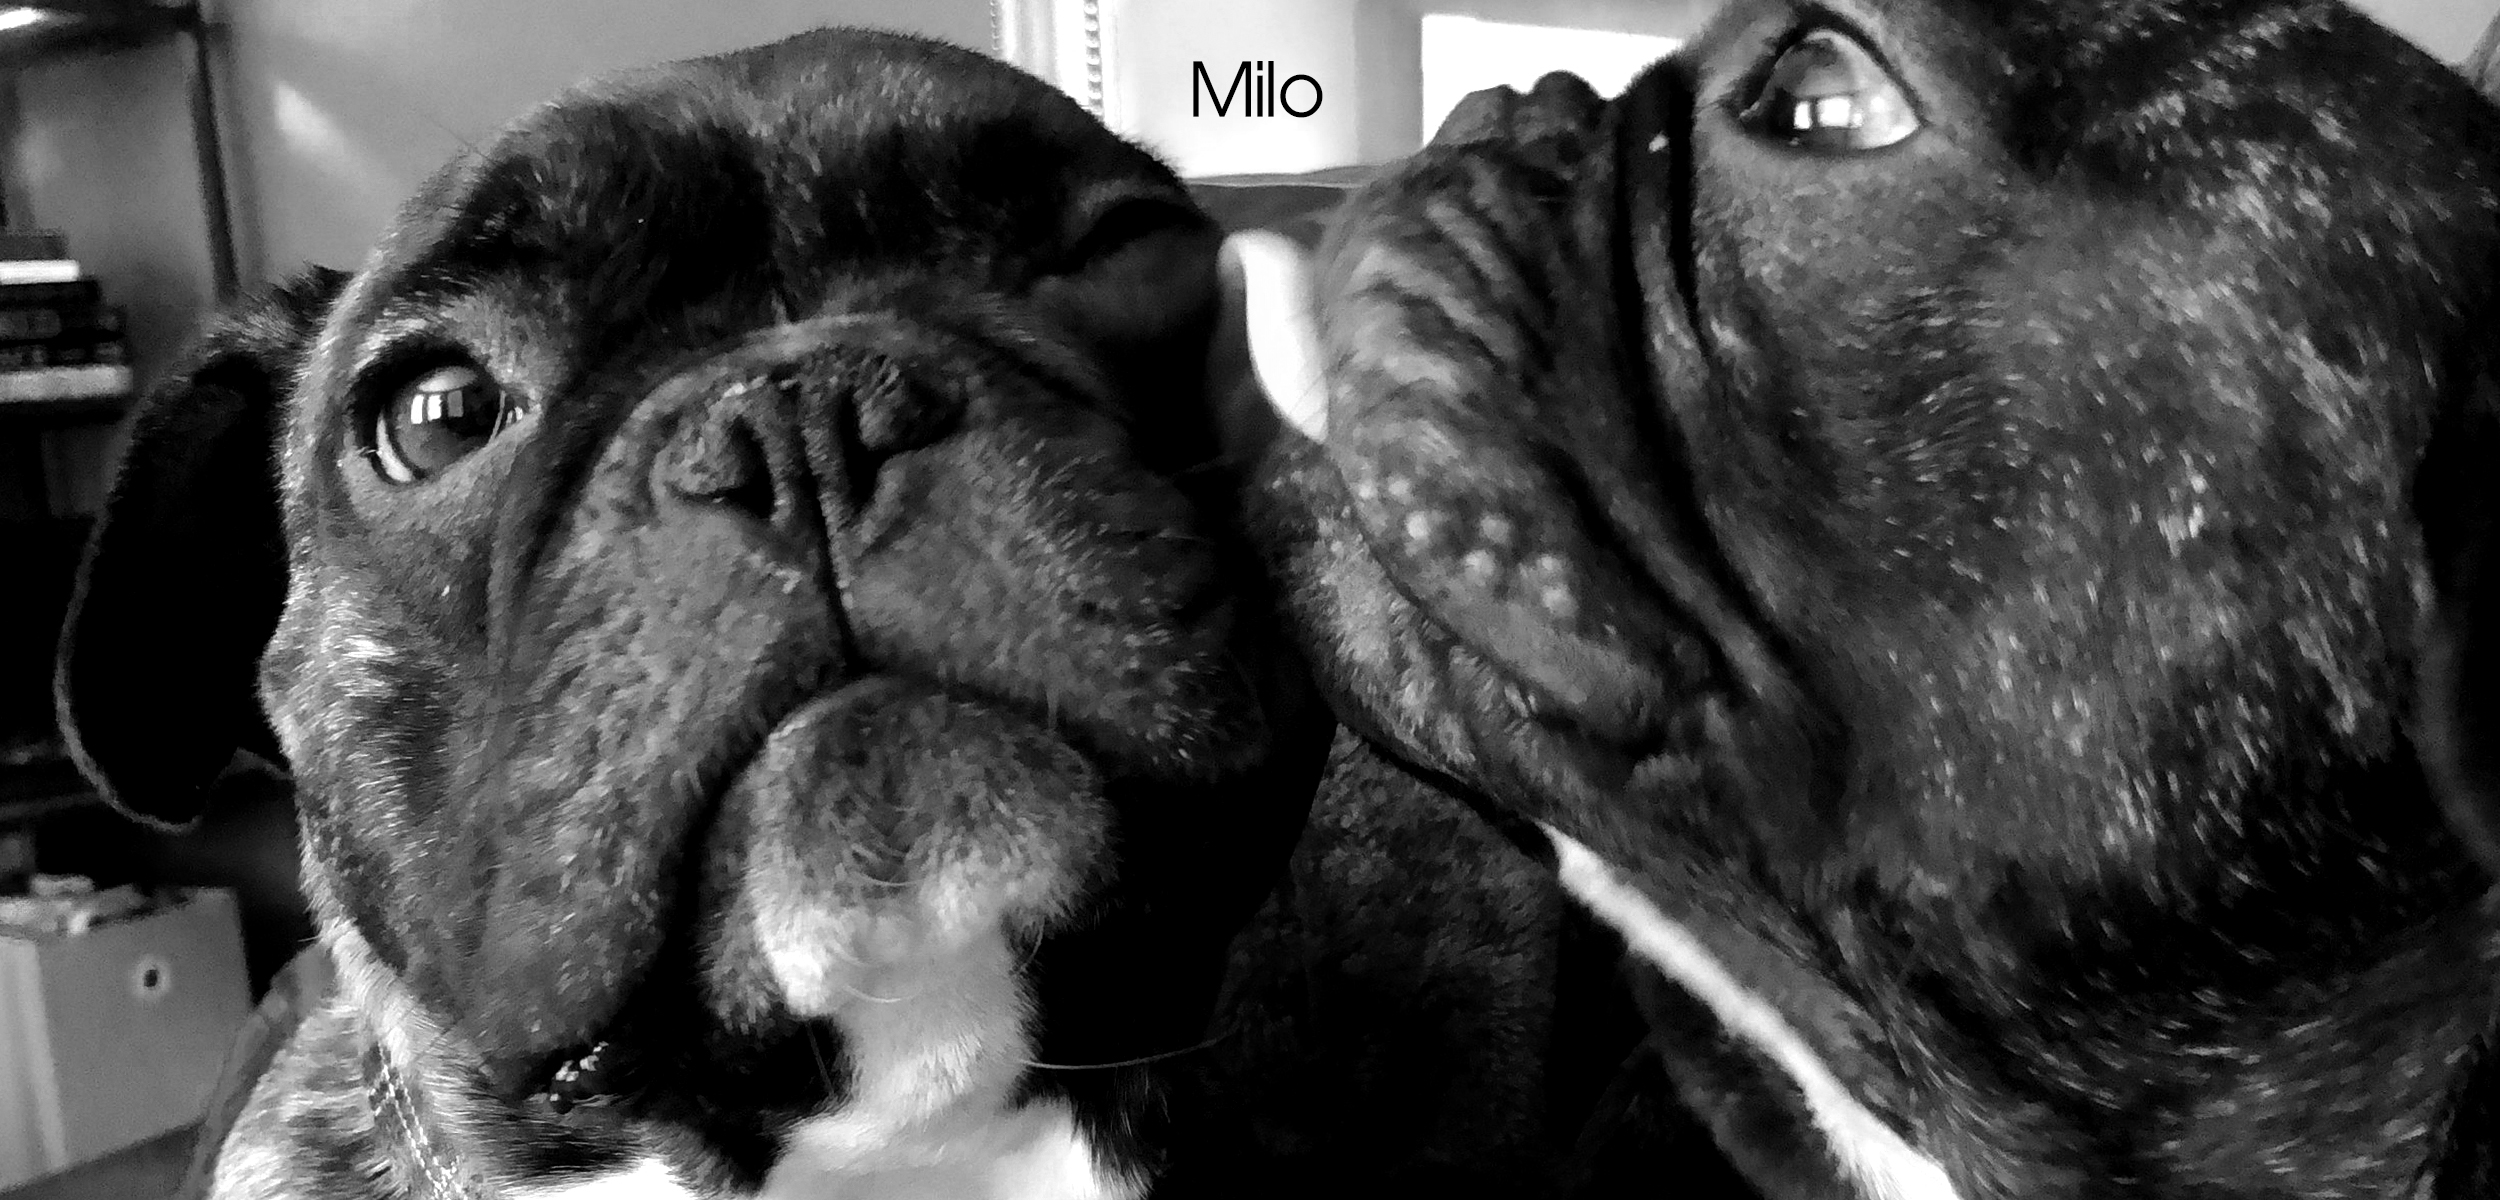 Milo FF slider images for website.jpg